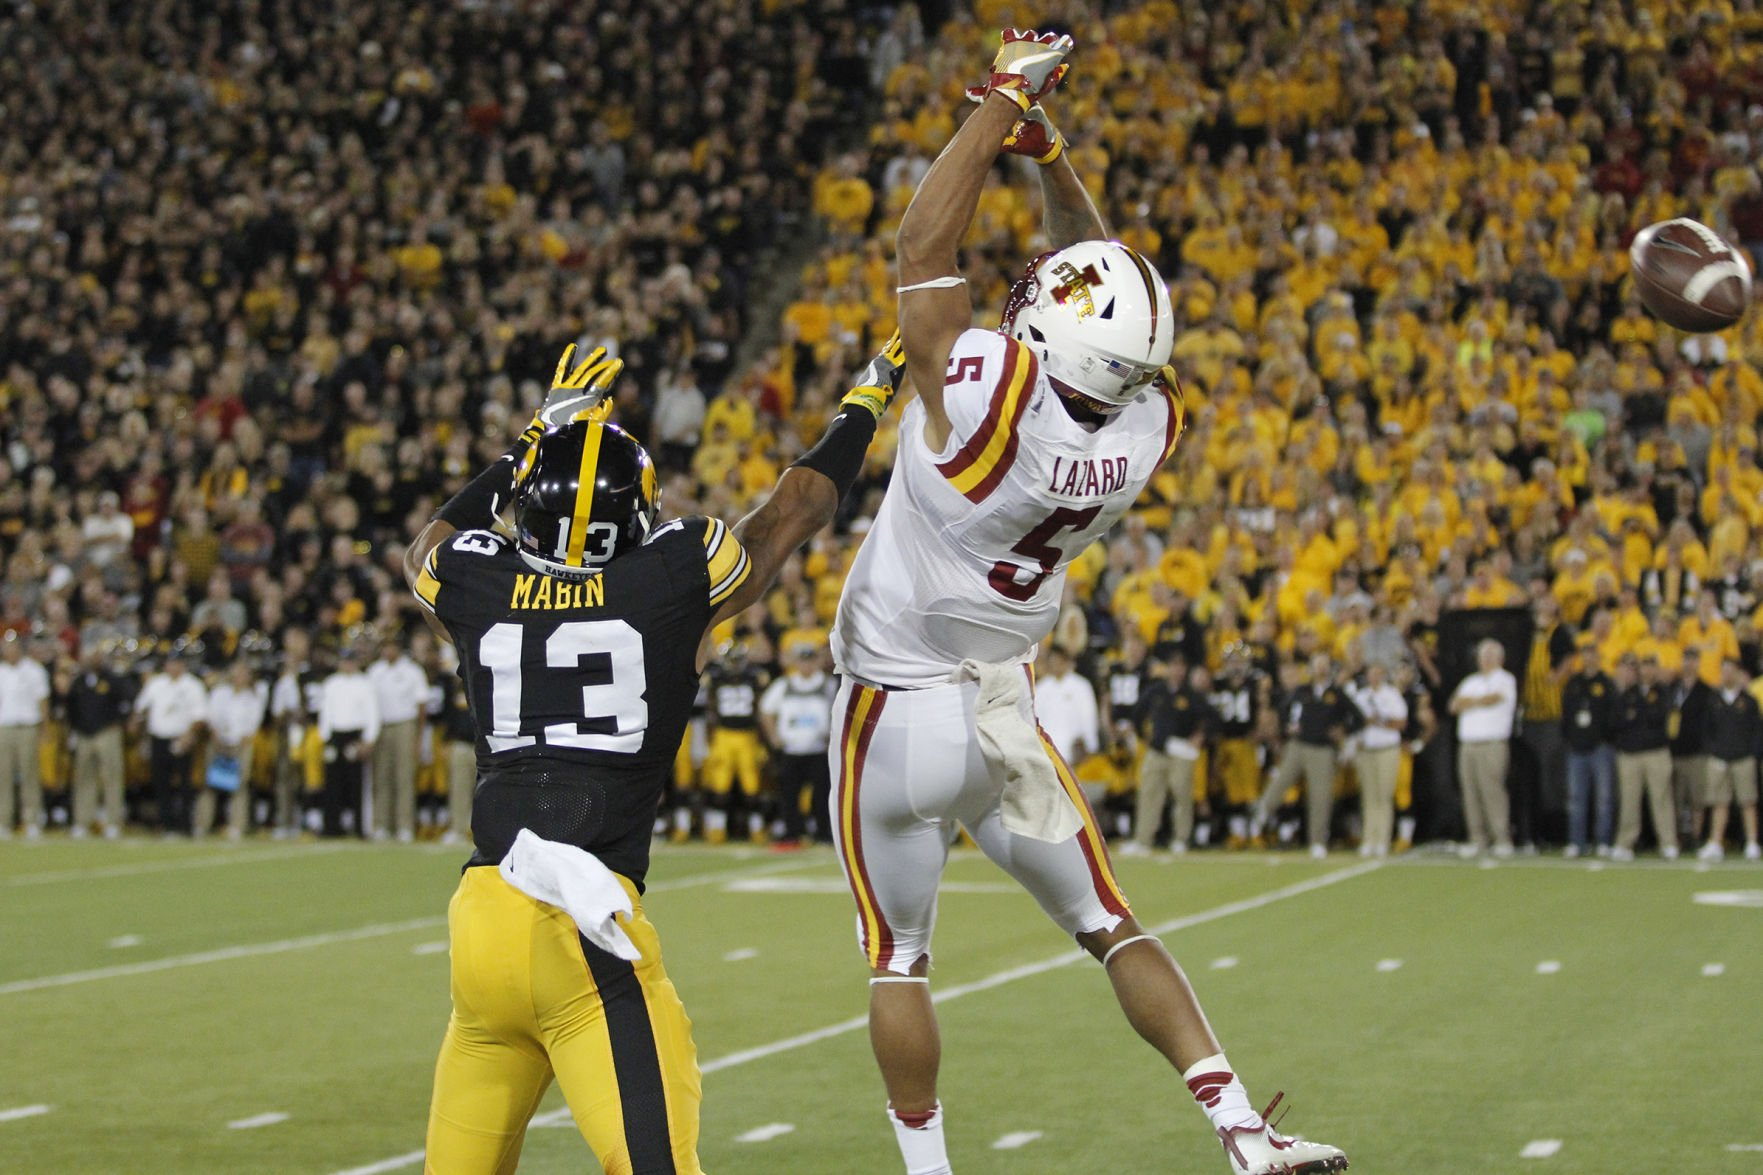 Iowa State plagued by missed opportunities in loss to K